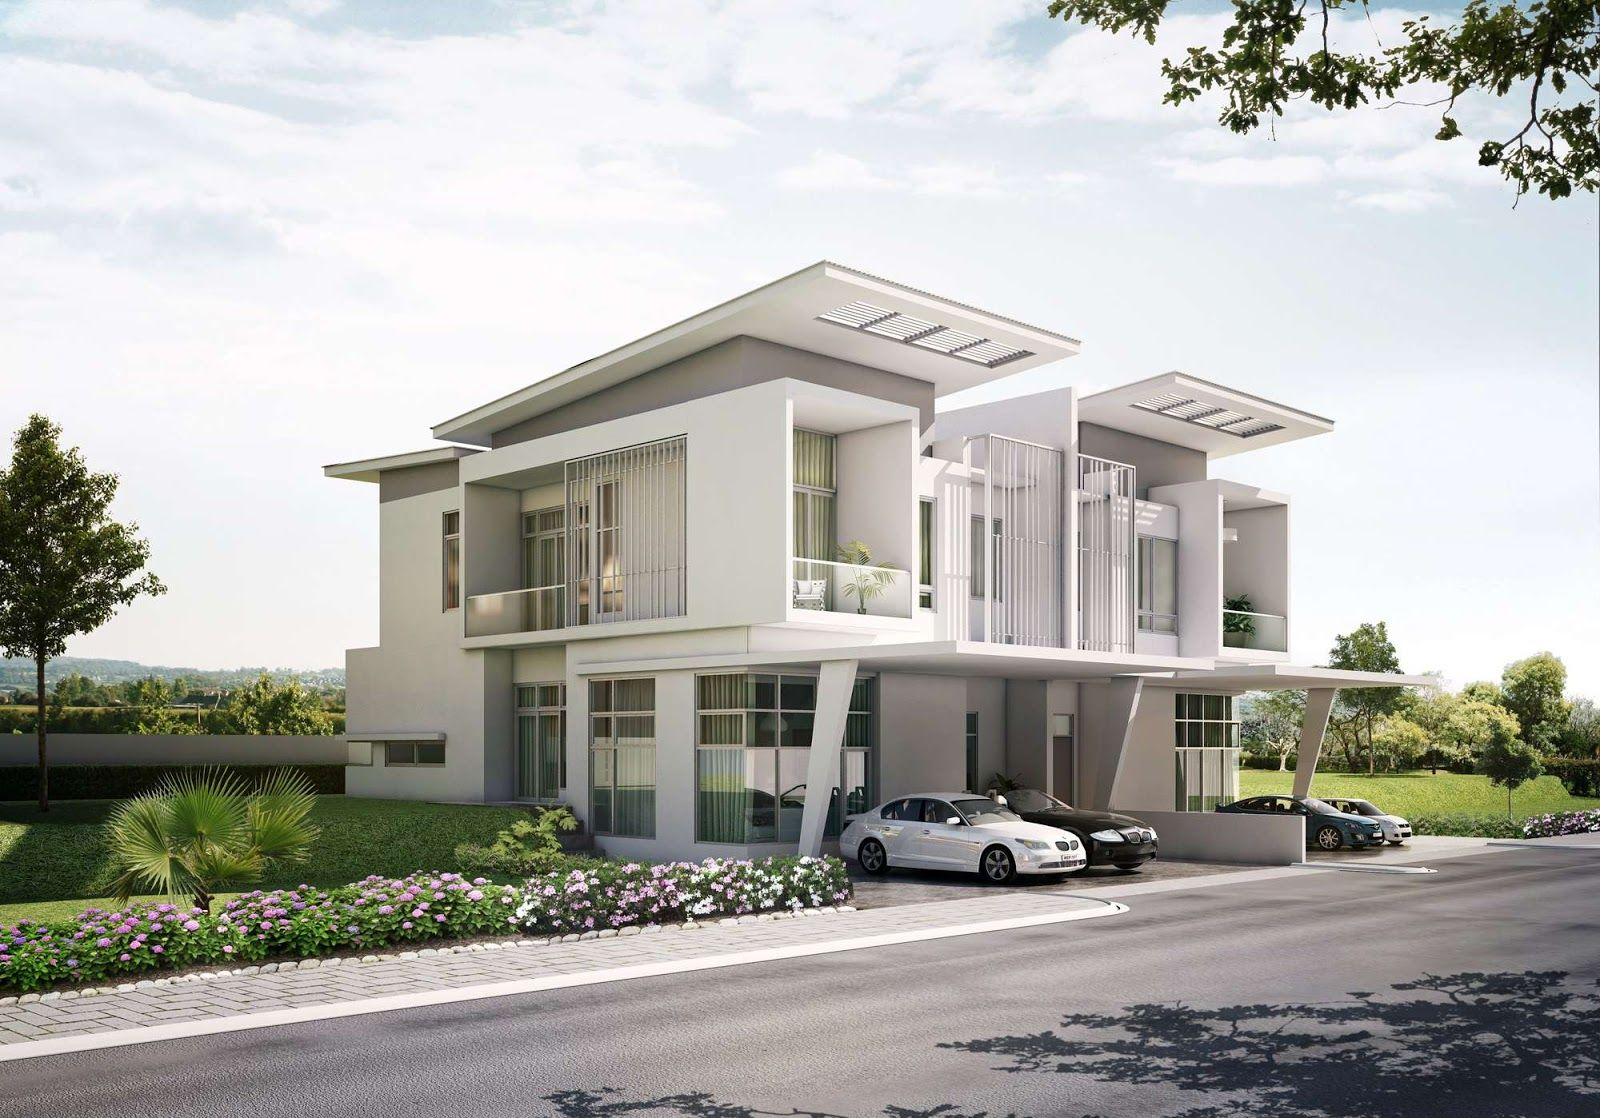 Singapore Modern Homes Exterior Designs Home Design - Home exterior designer